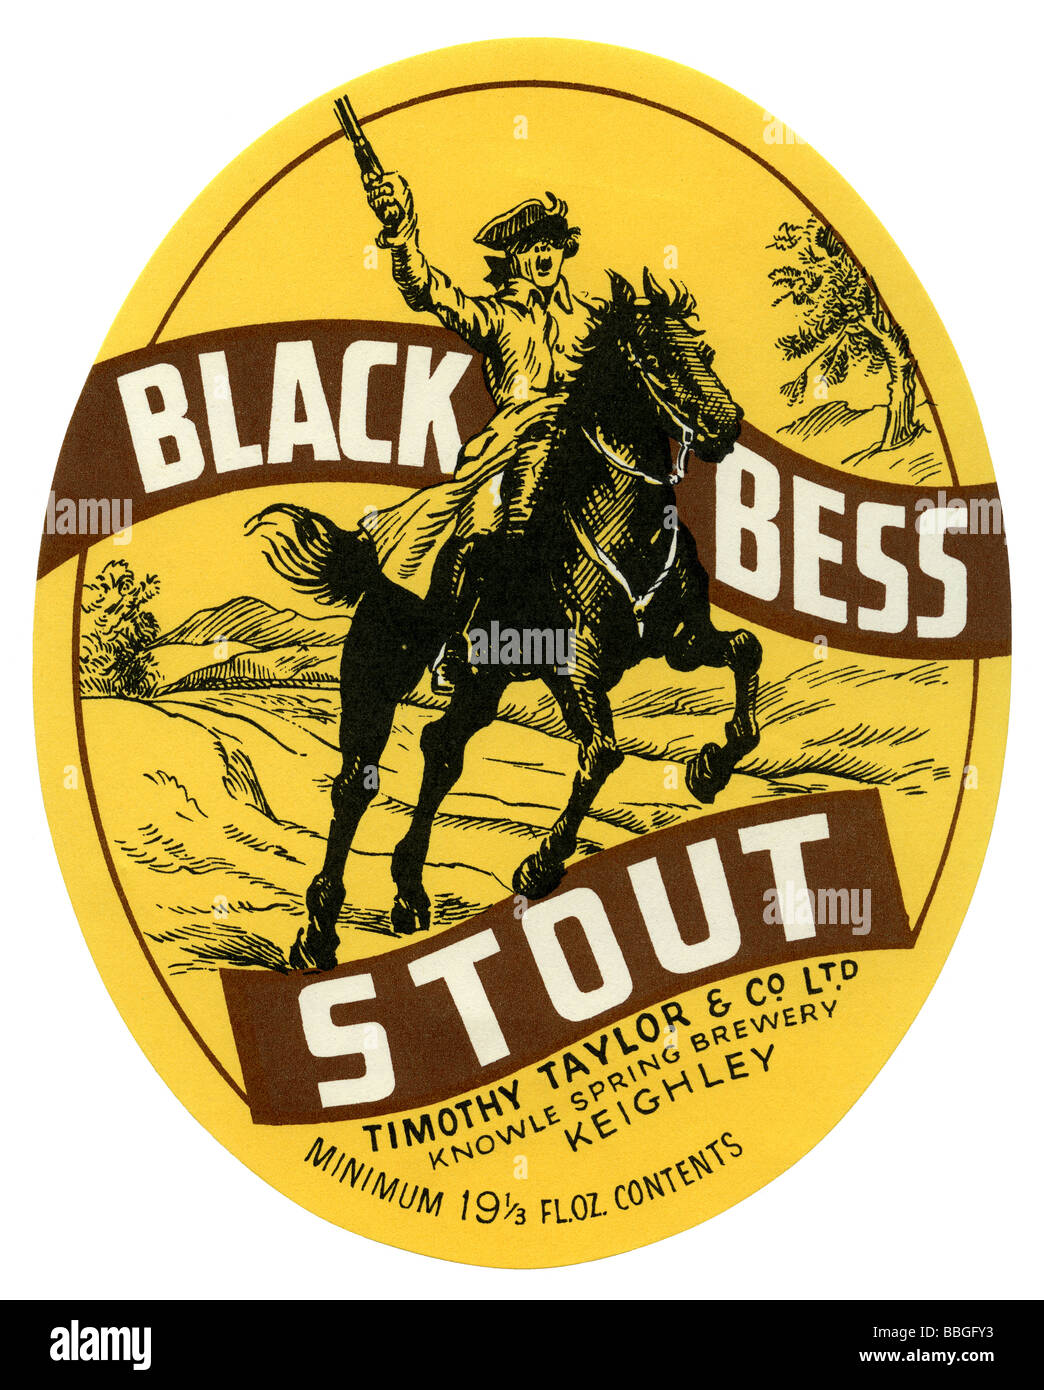 Old British beer label for Timothy Taylors Black Bess Stout – Beer Label